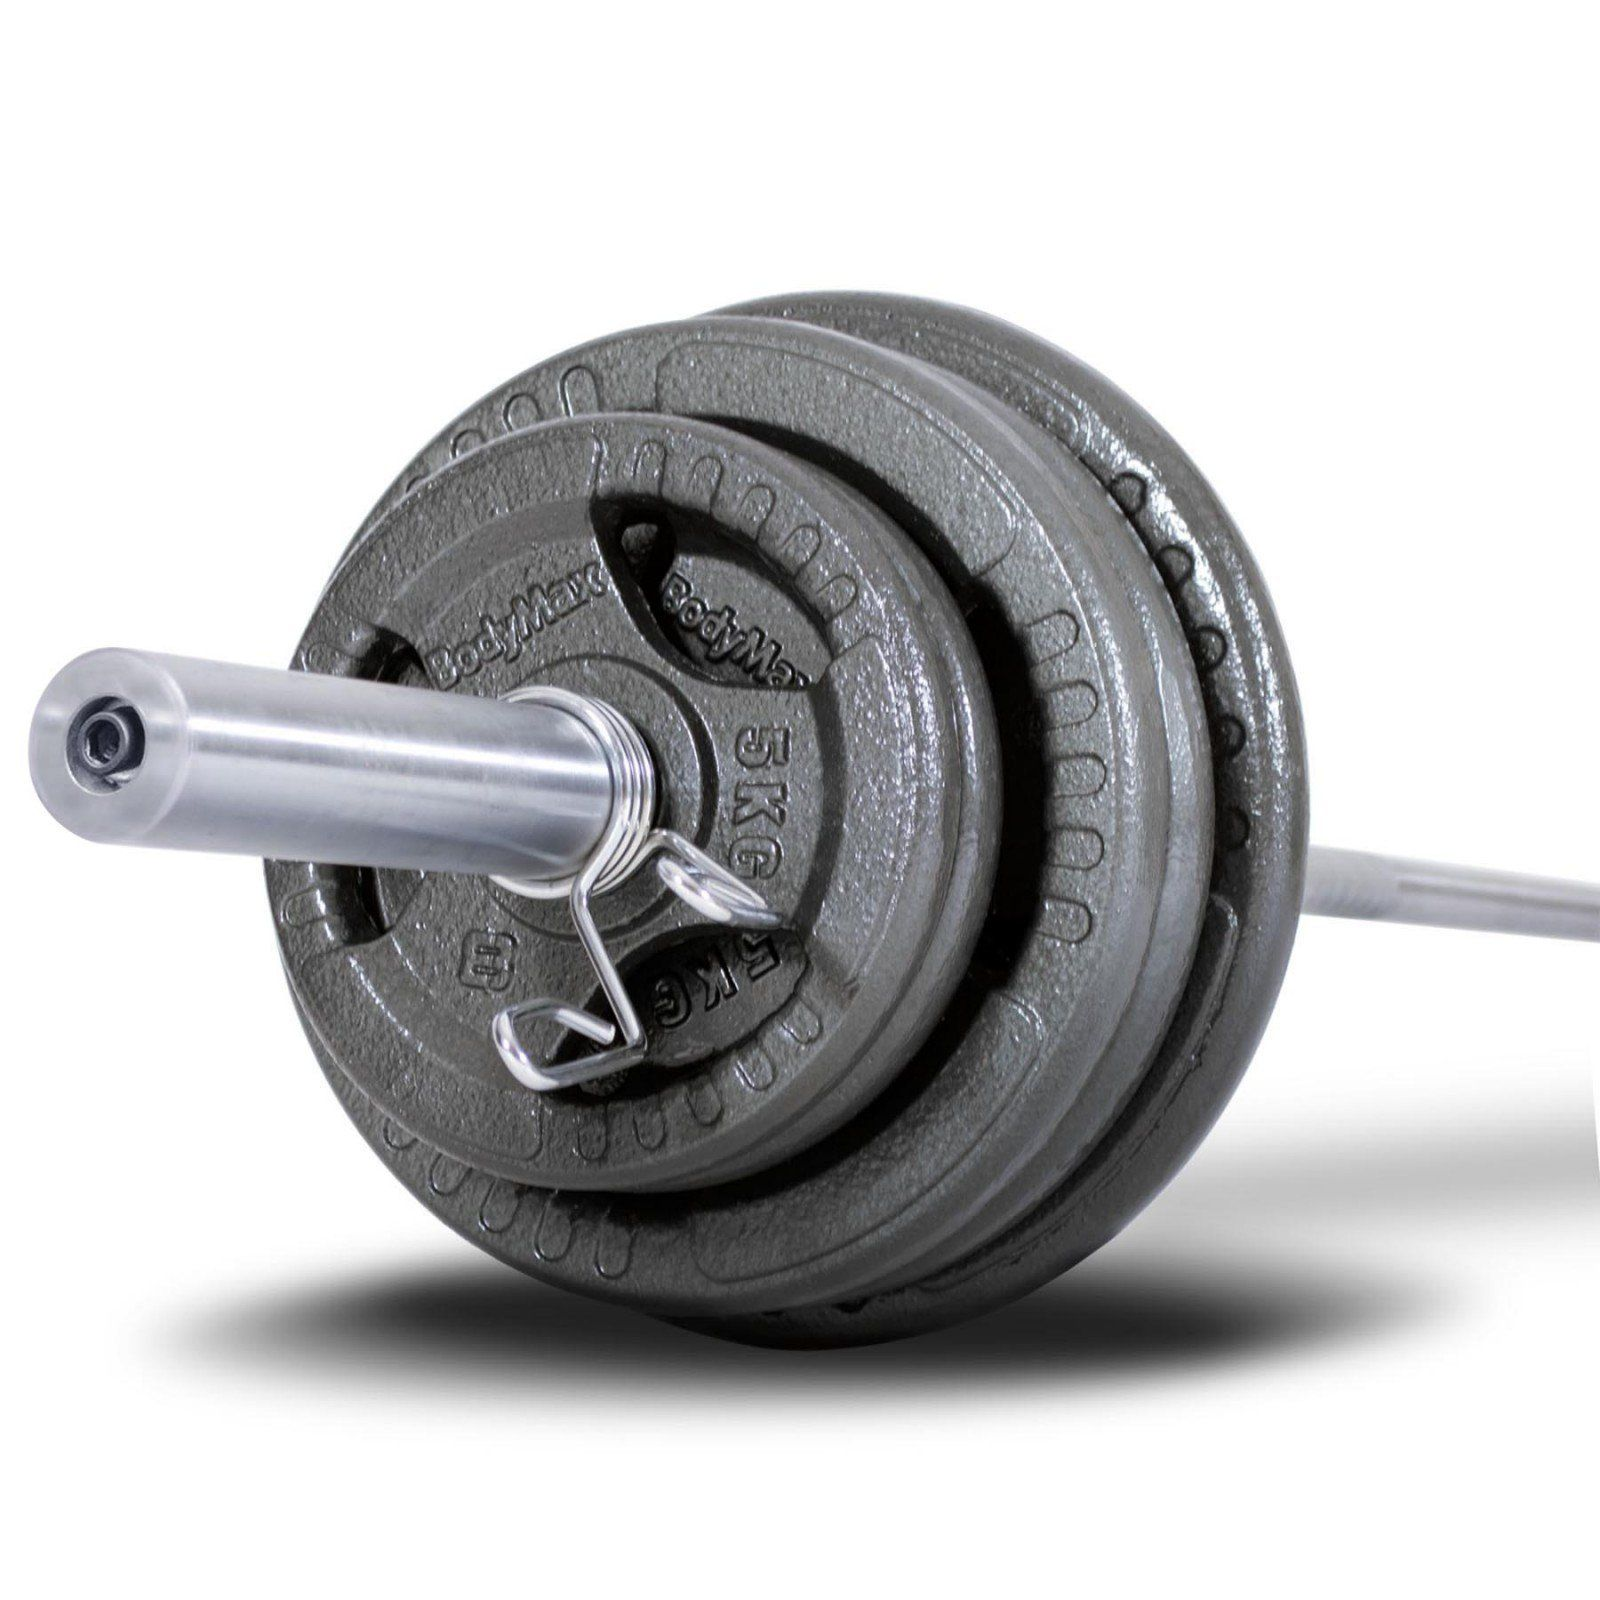 Bodymax 100kg Olympic Cast Tri Grip Barbell Kit With 6ft Bar Weight Kits Weights At Powerhouse Fitness Barbell Workout Barbell Set Barbell